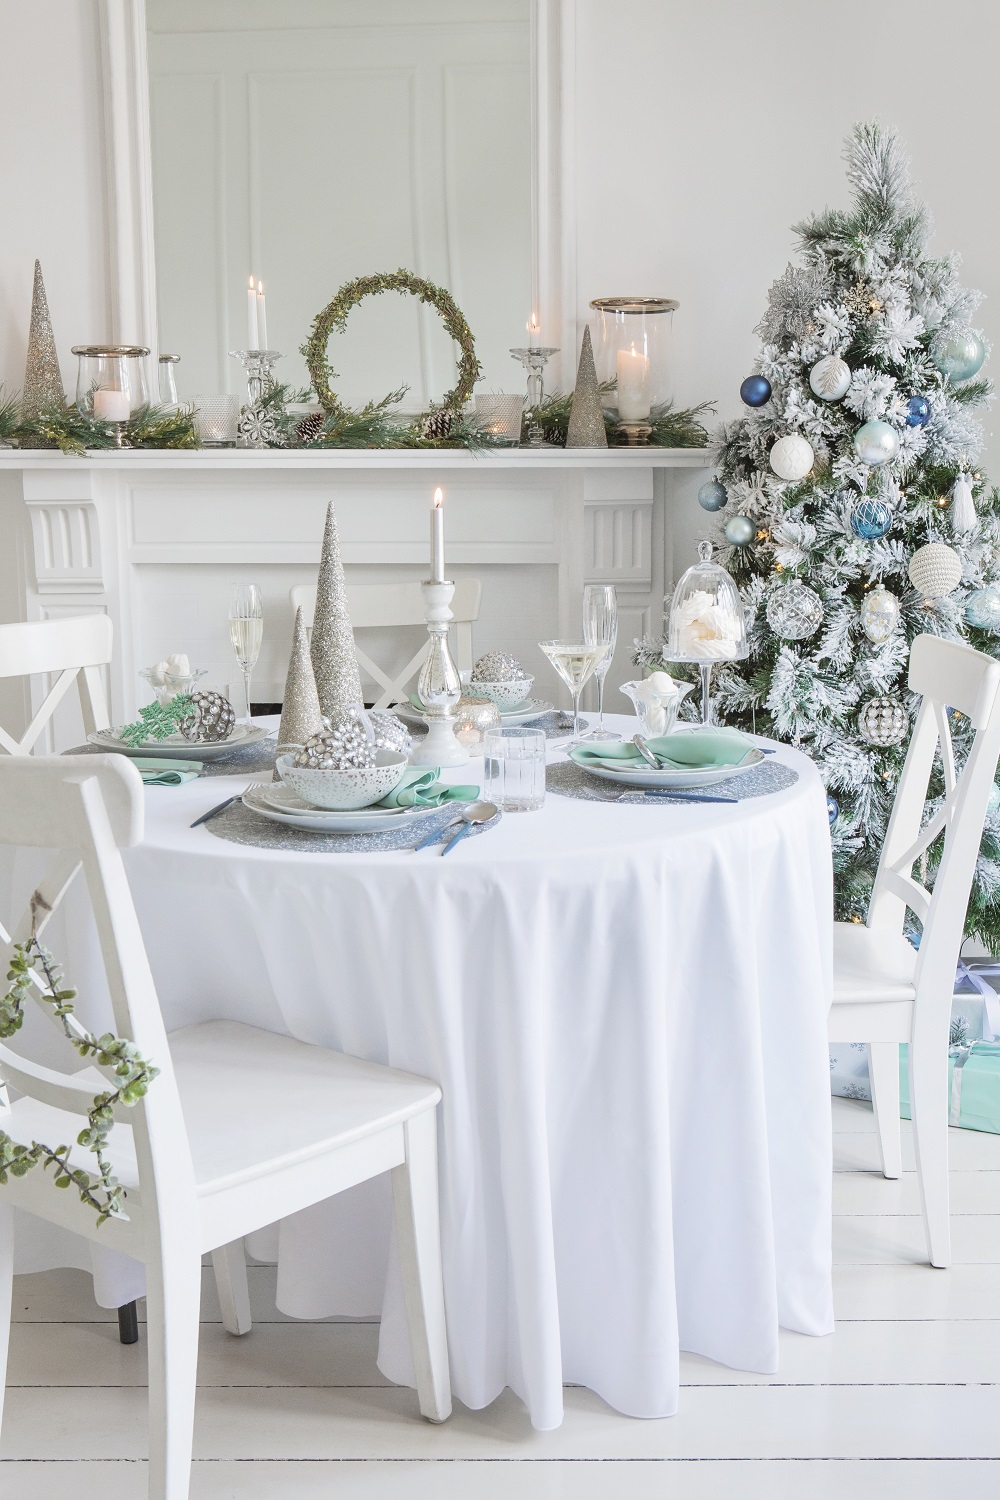 Create A Winter Wonderland With Glacial Ice Blue Christmas Decorations